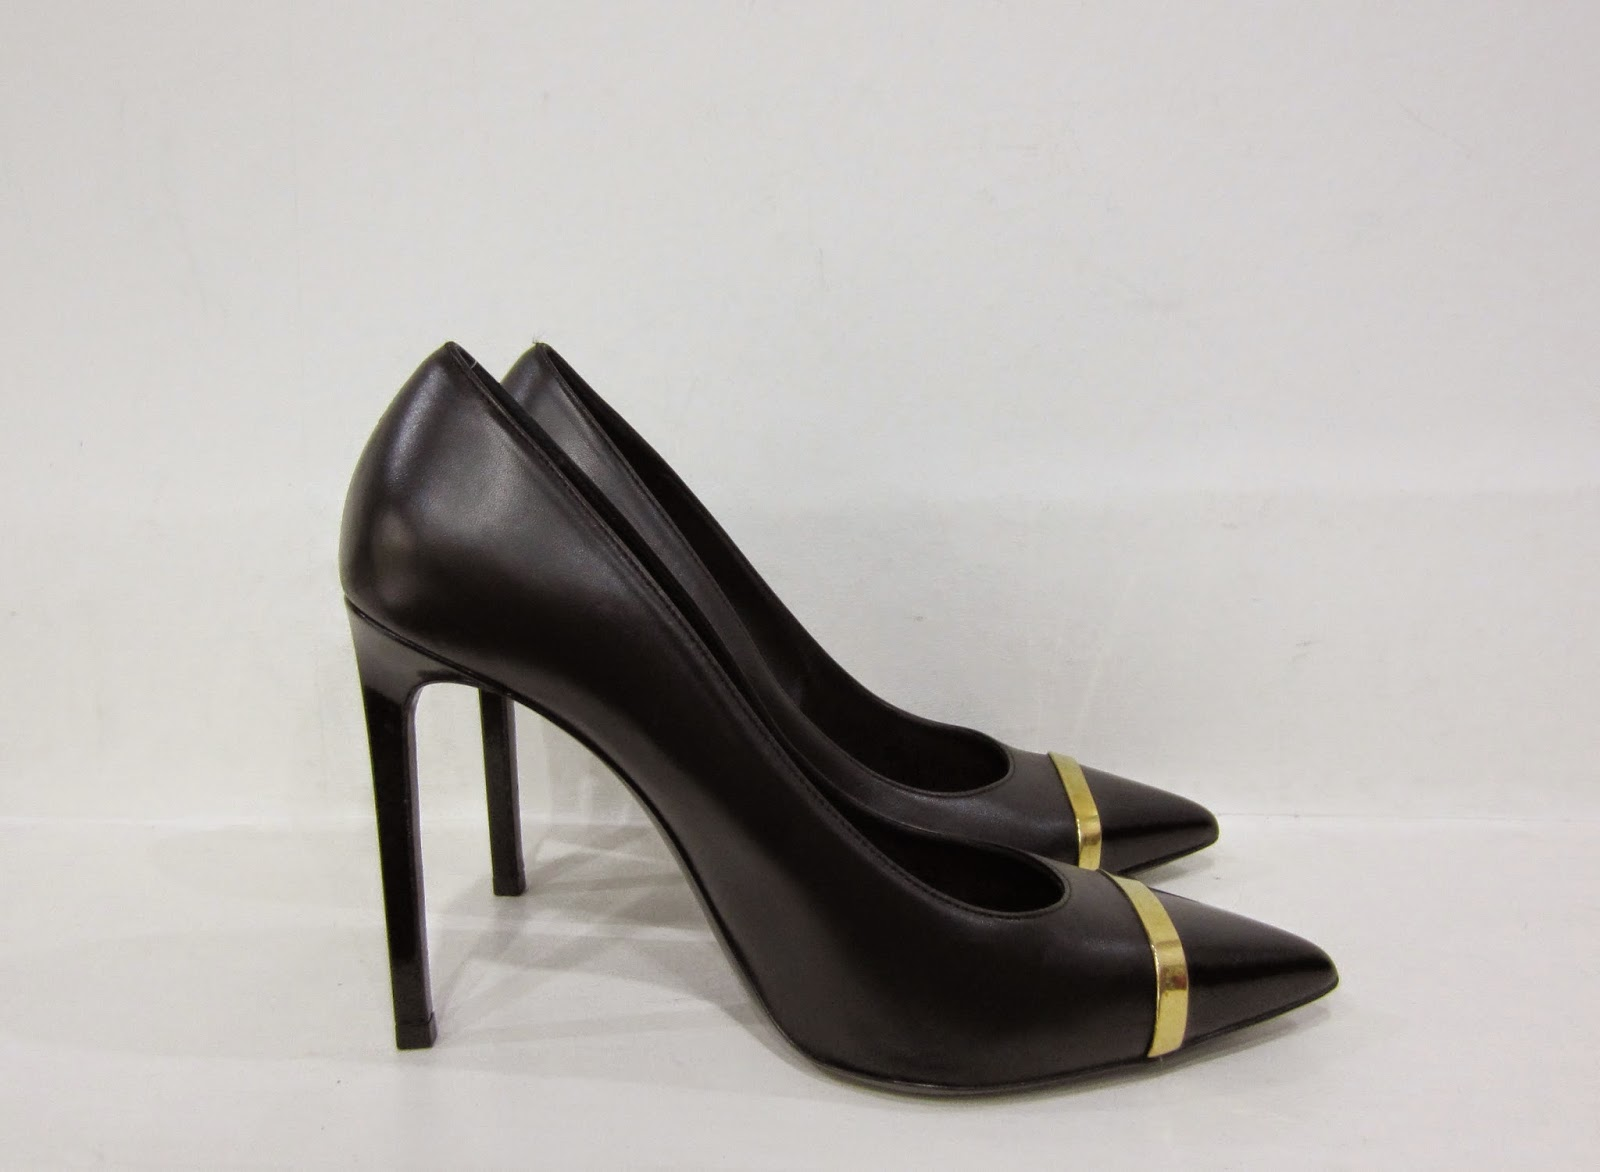 Saint Laurent Black High Heeled Shoes with Gold Trim